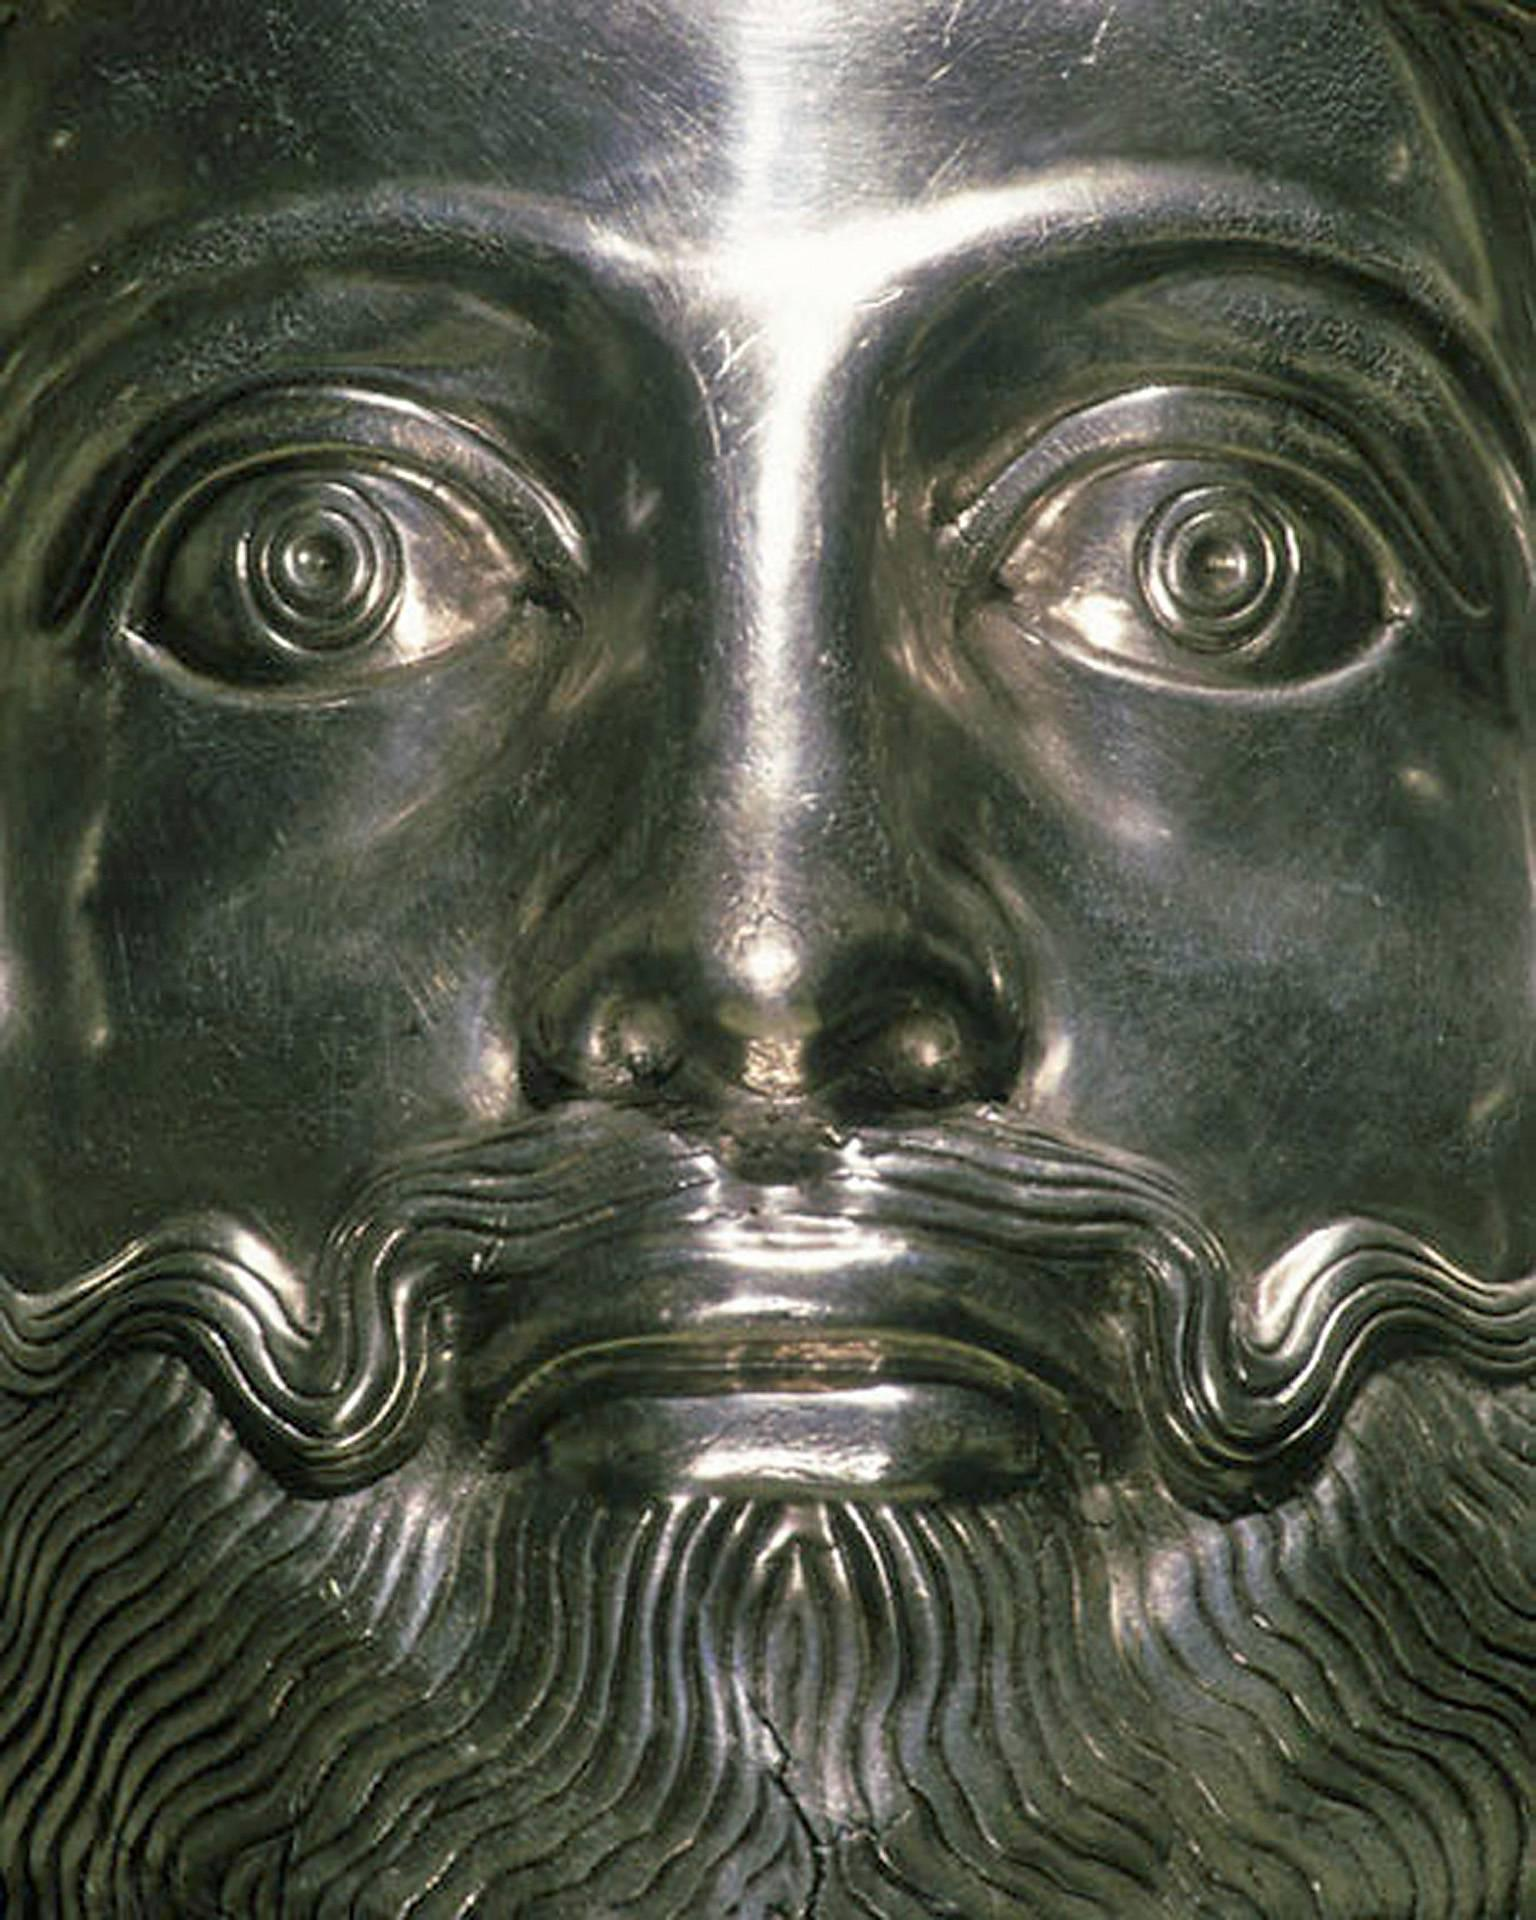 F017, Iranian, Guild Silver - Close-Up Photograph of Silver Iranian Sculpture